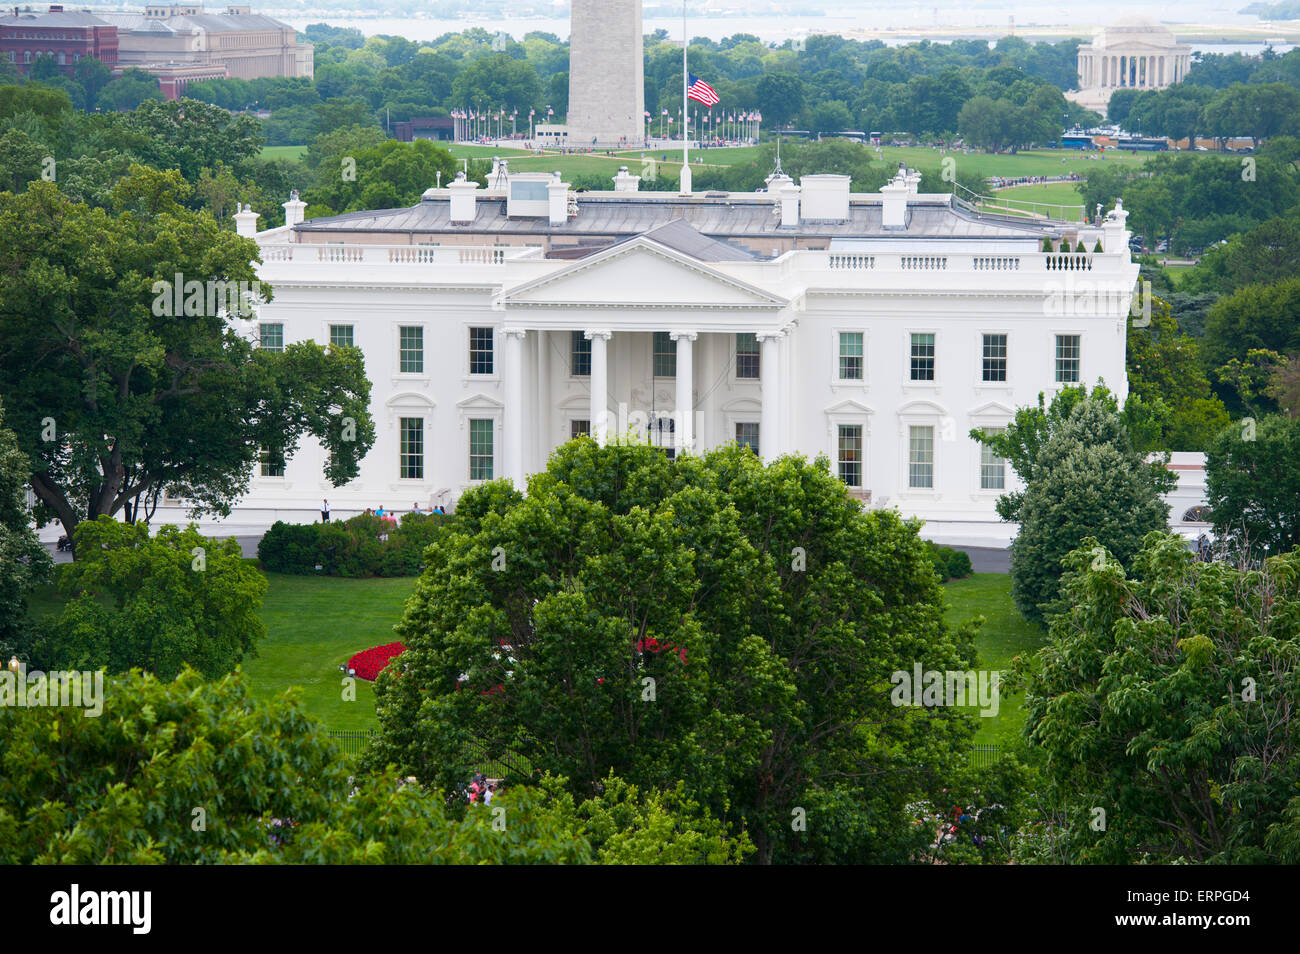 Terrific Usa Washington Dc The White House Home Of The American Download Free Architecture Designs Scobabritishbridgeorg